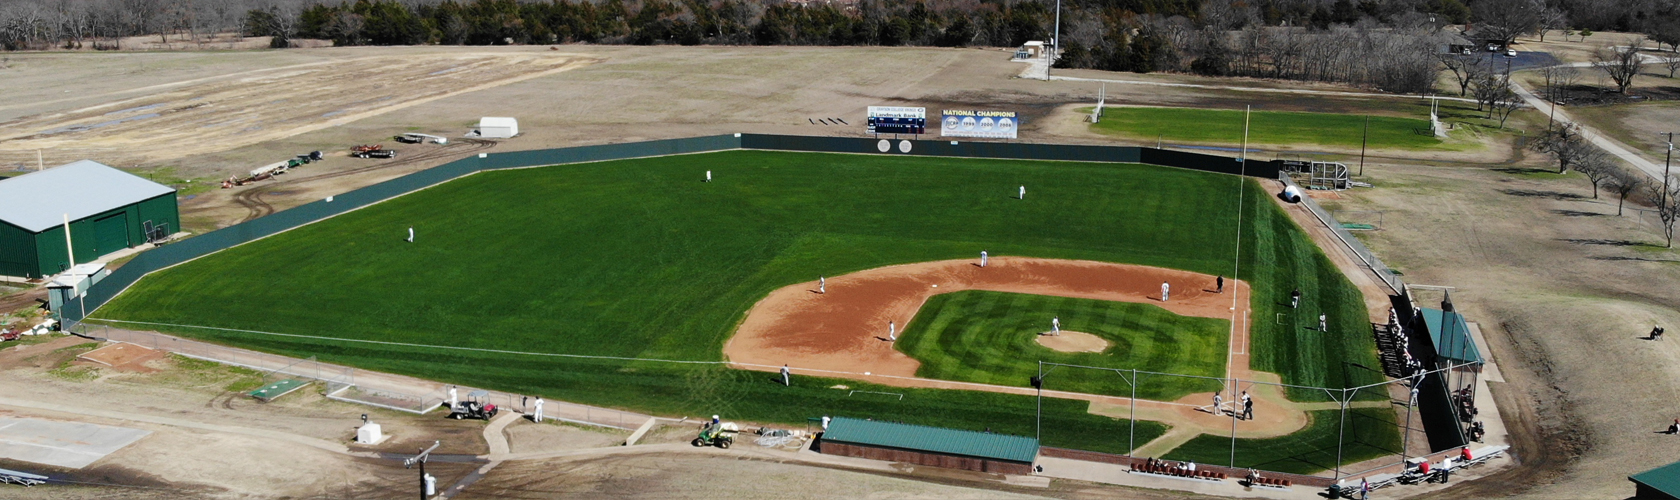 Picture of Grayson Baseball Field